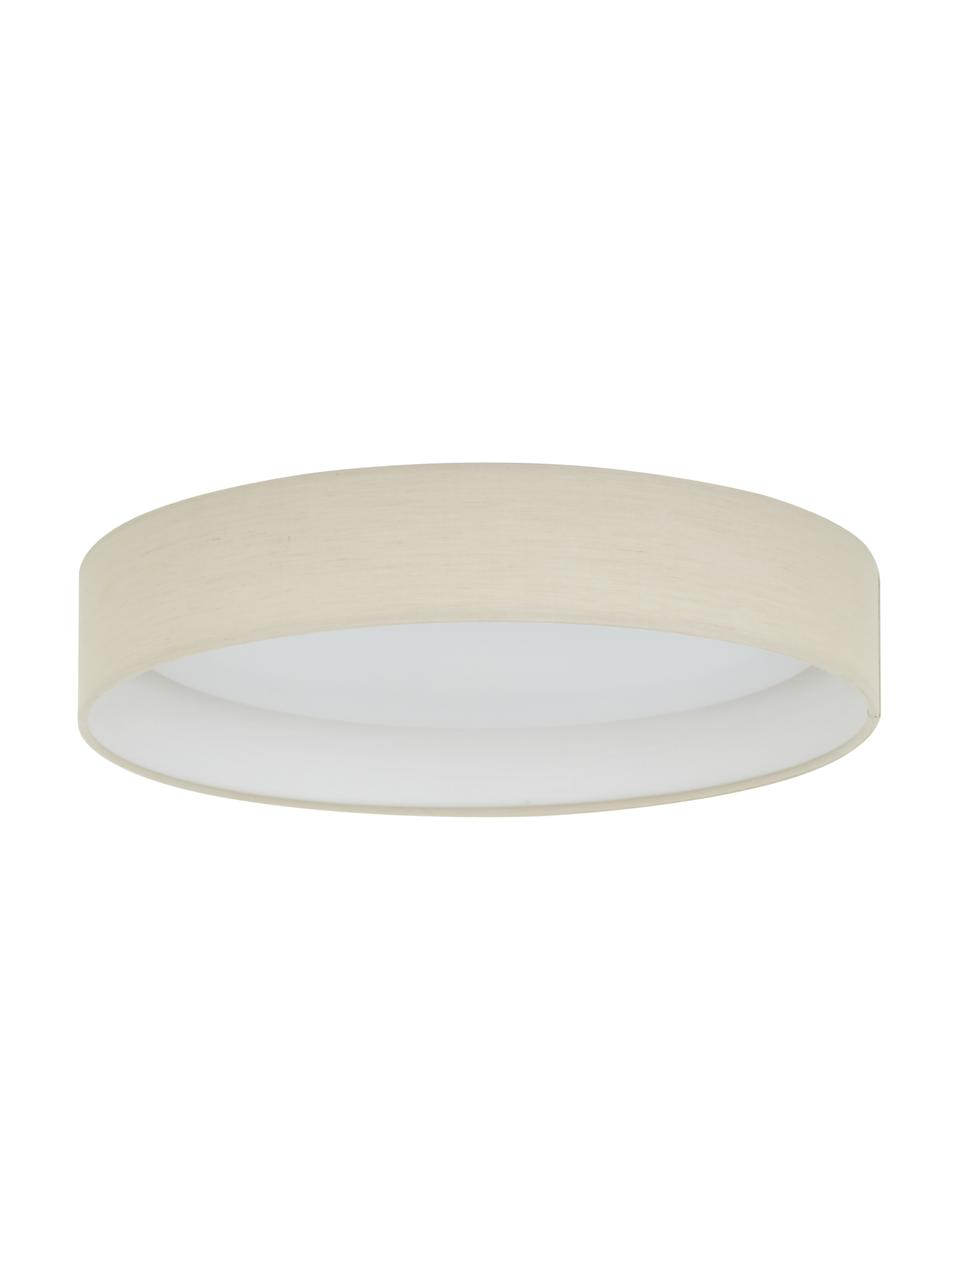 Plafonnier LED rond taupe Helen, Taupe